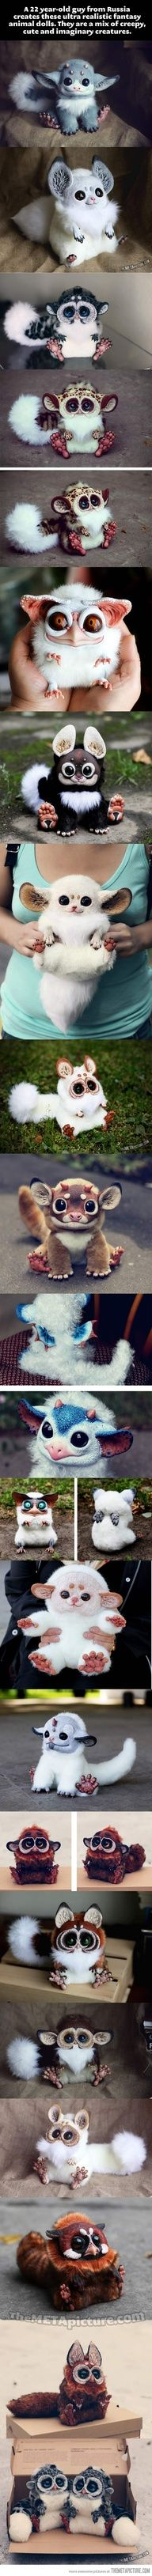 Ultra-realistic fantasy animal dolls. they remind me of furby's, i want one!